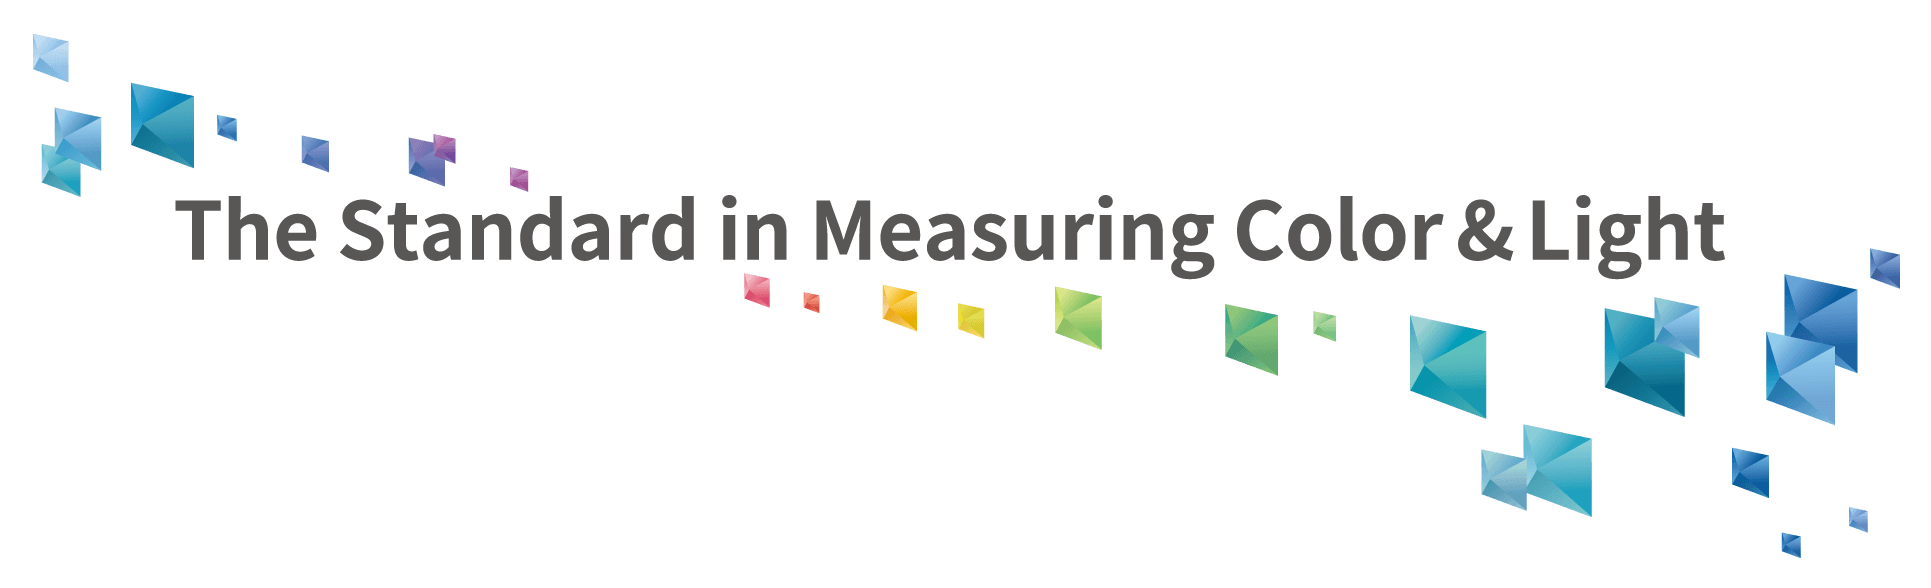 The Standard in Measuring Color Light